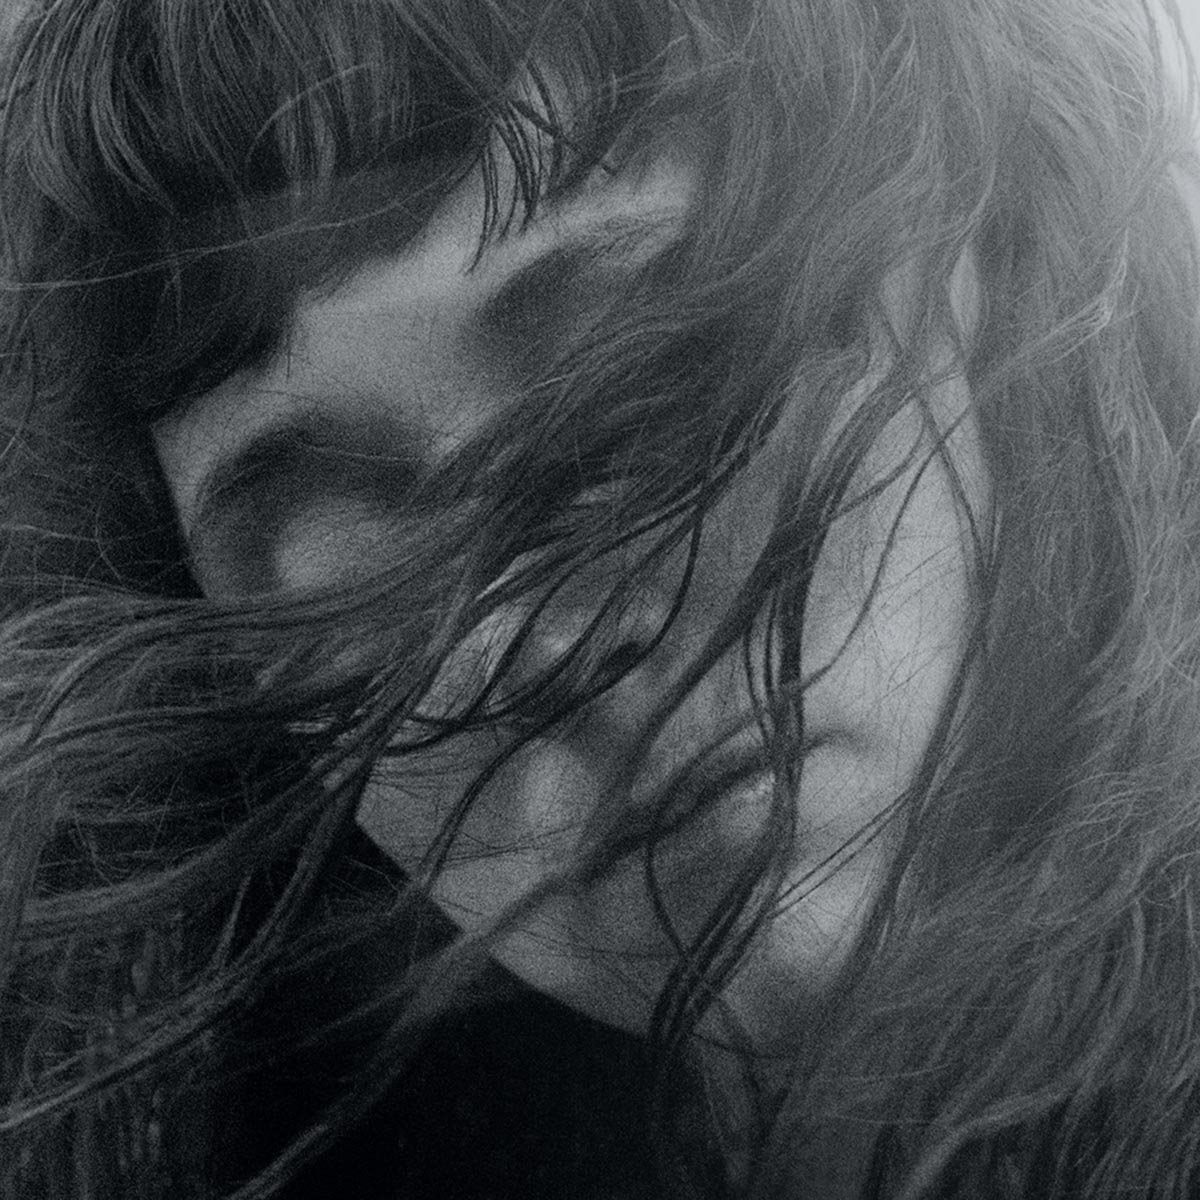 Waxahatchee – Out In The Storm (Merge Records)